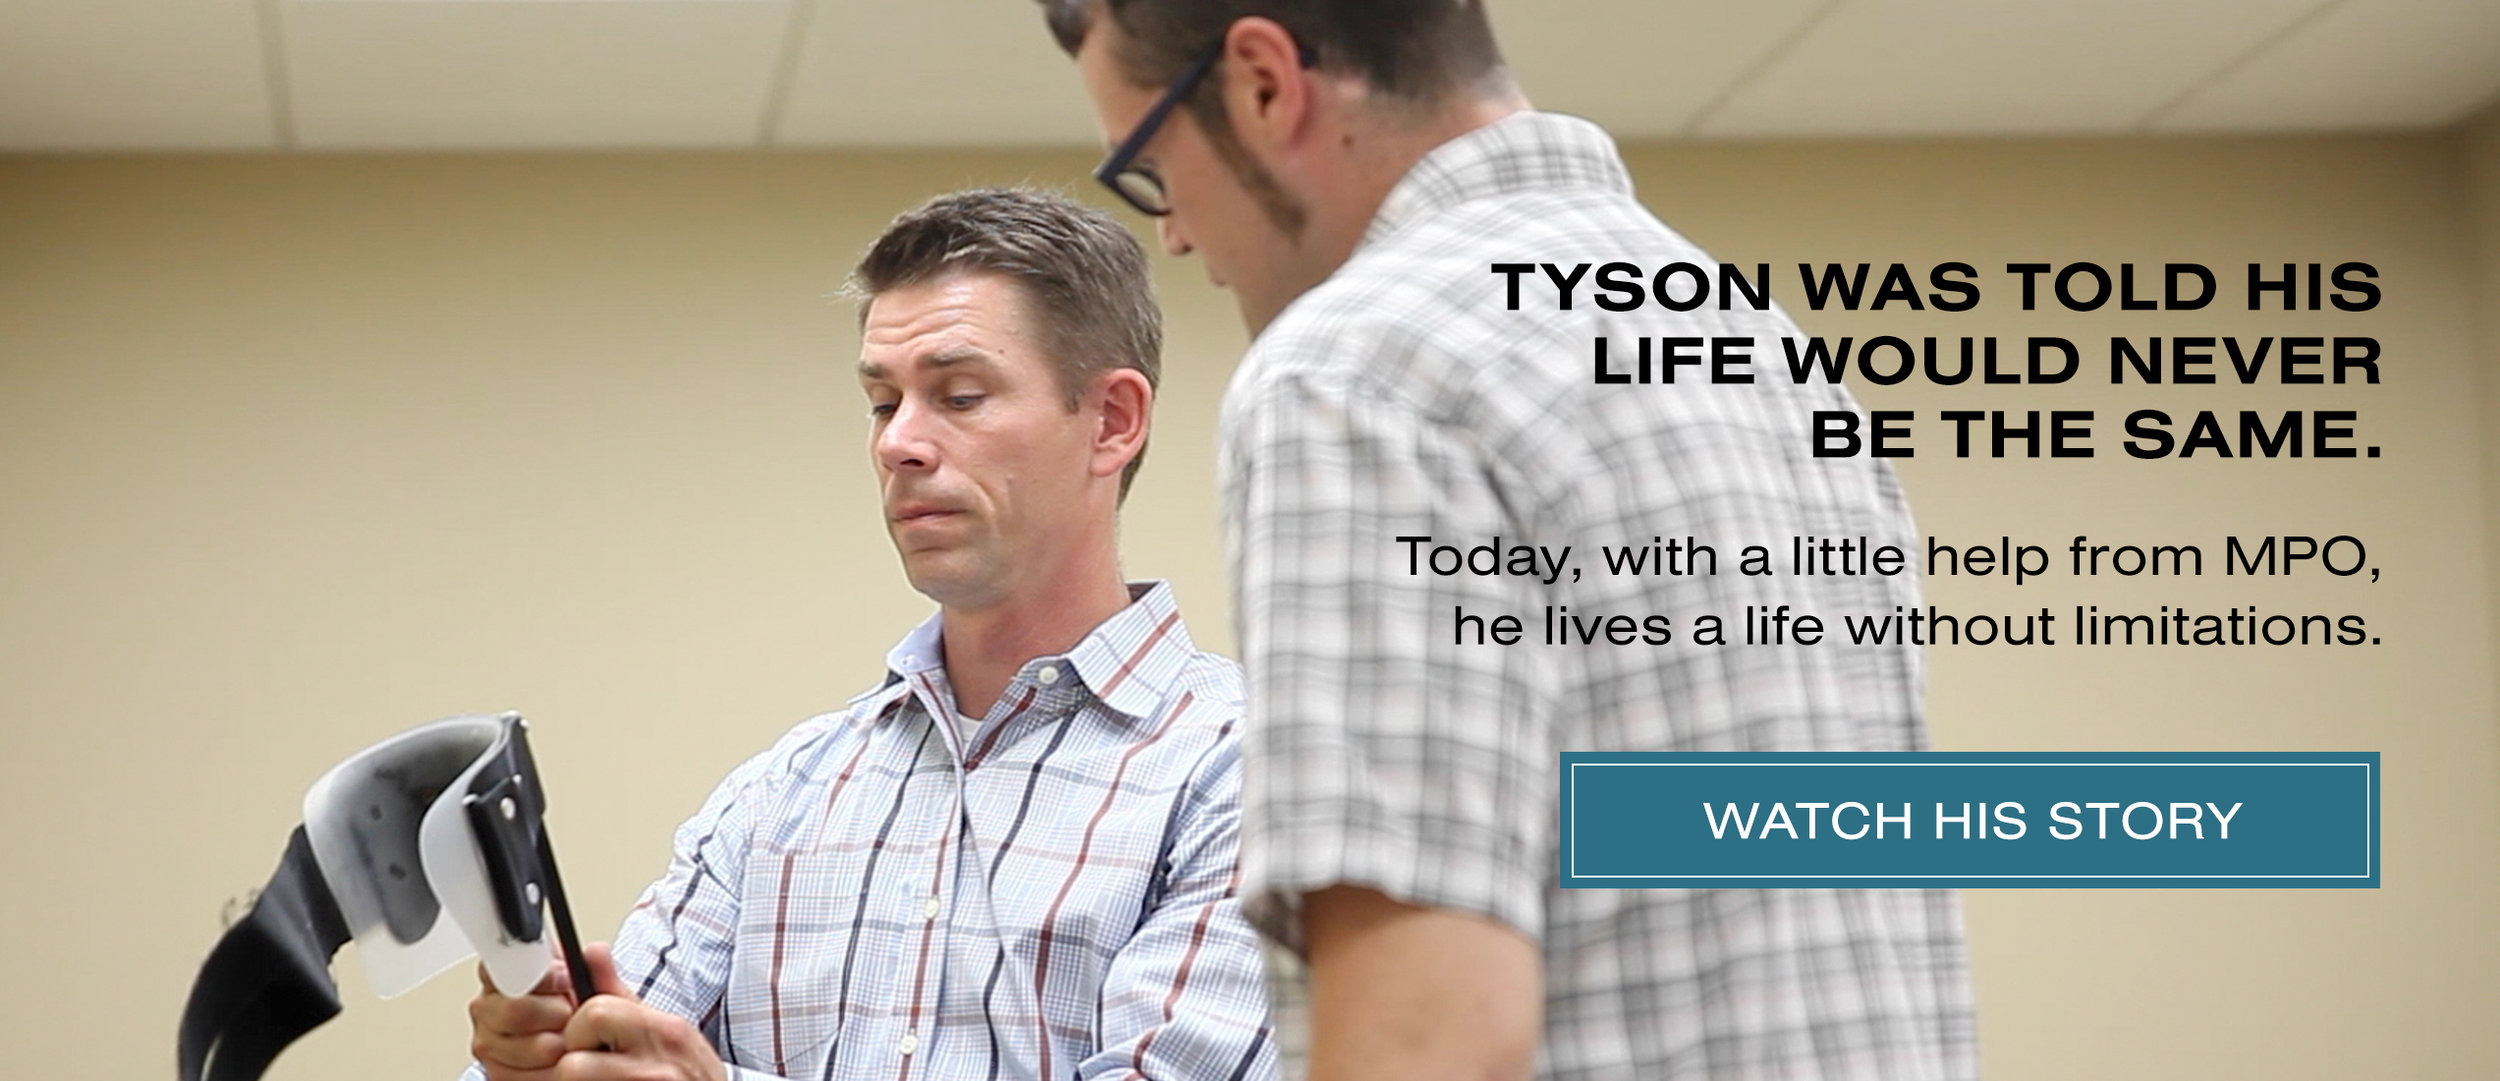 Tyson was told his life would never be the same.